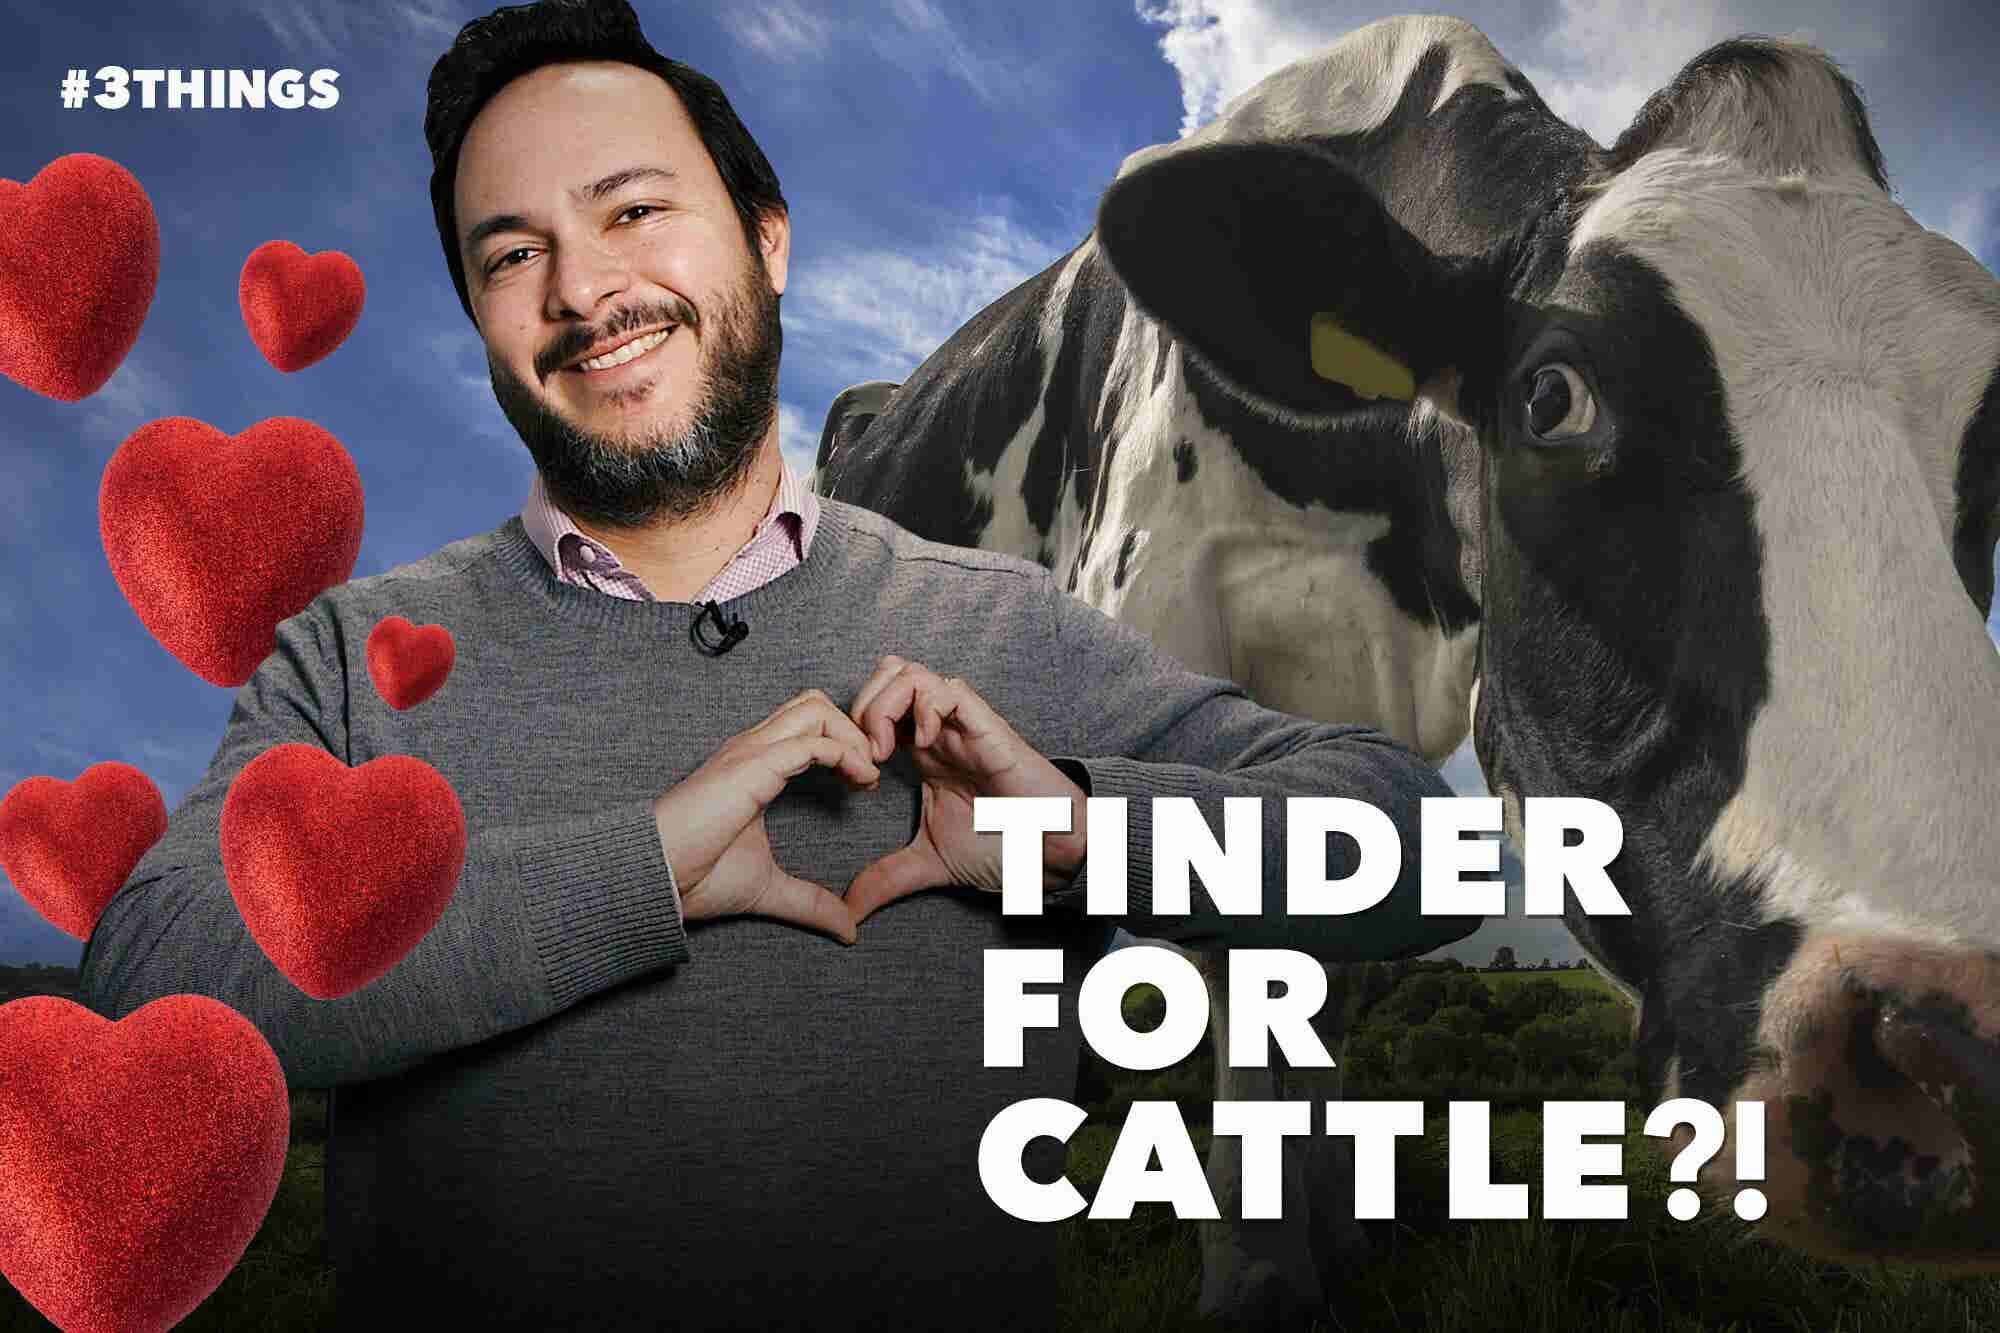 There's a New Version of Tinder Made Just for Cattle (60-Second Video)